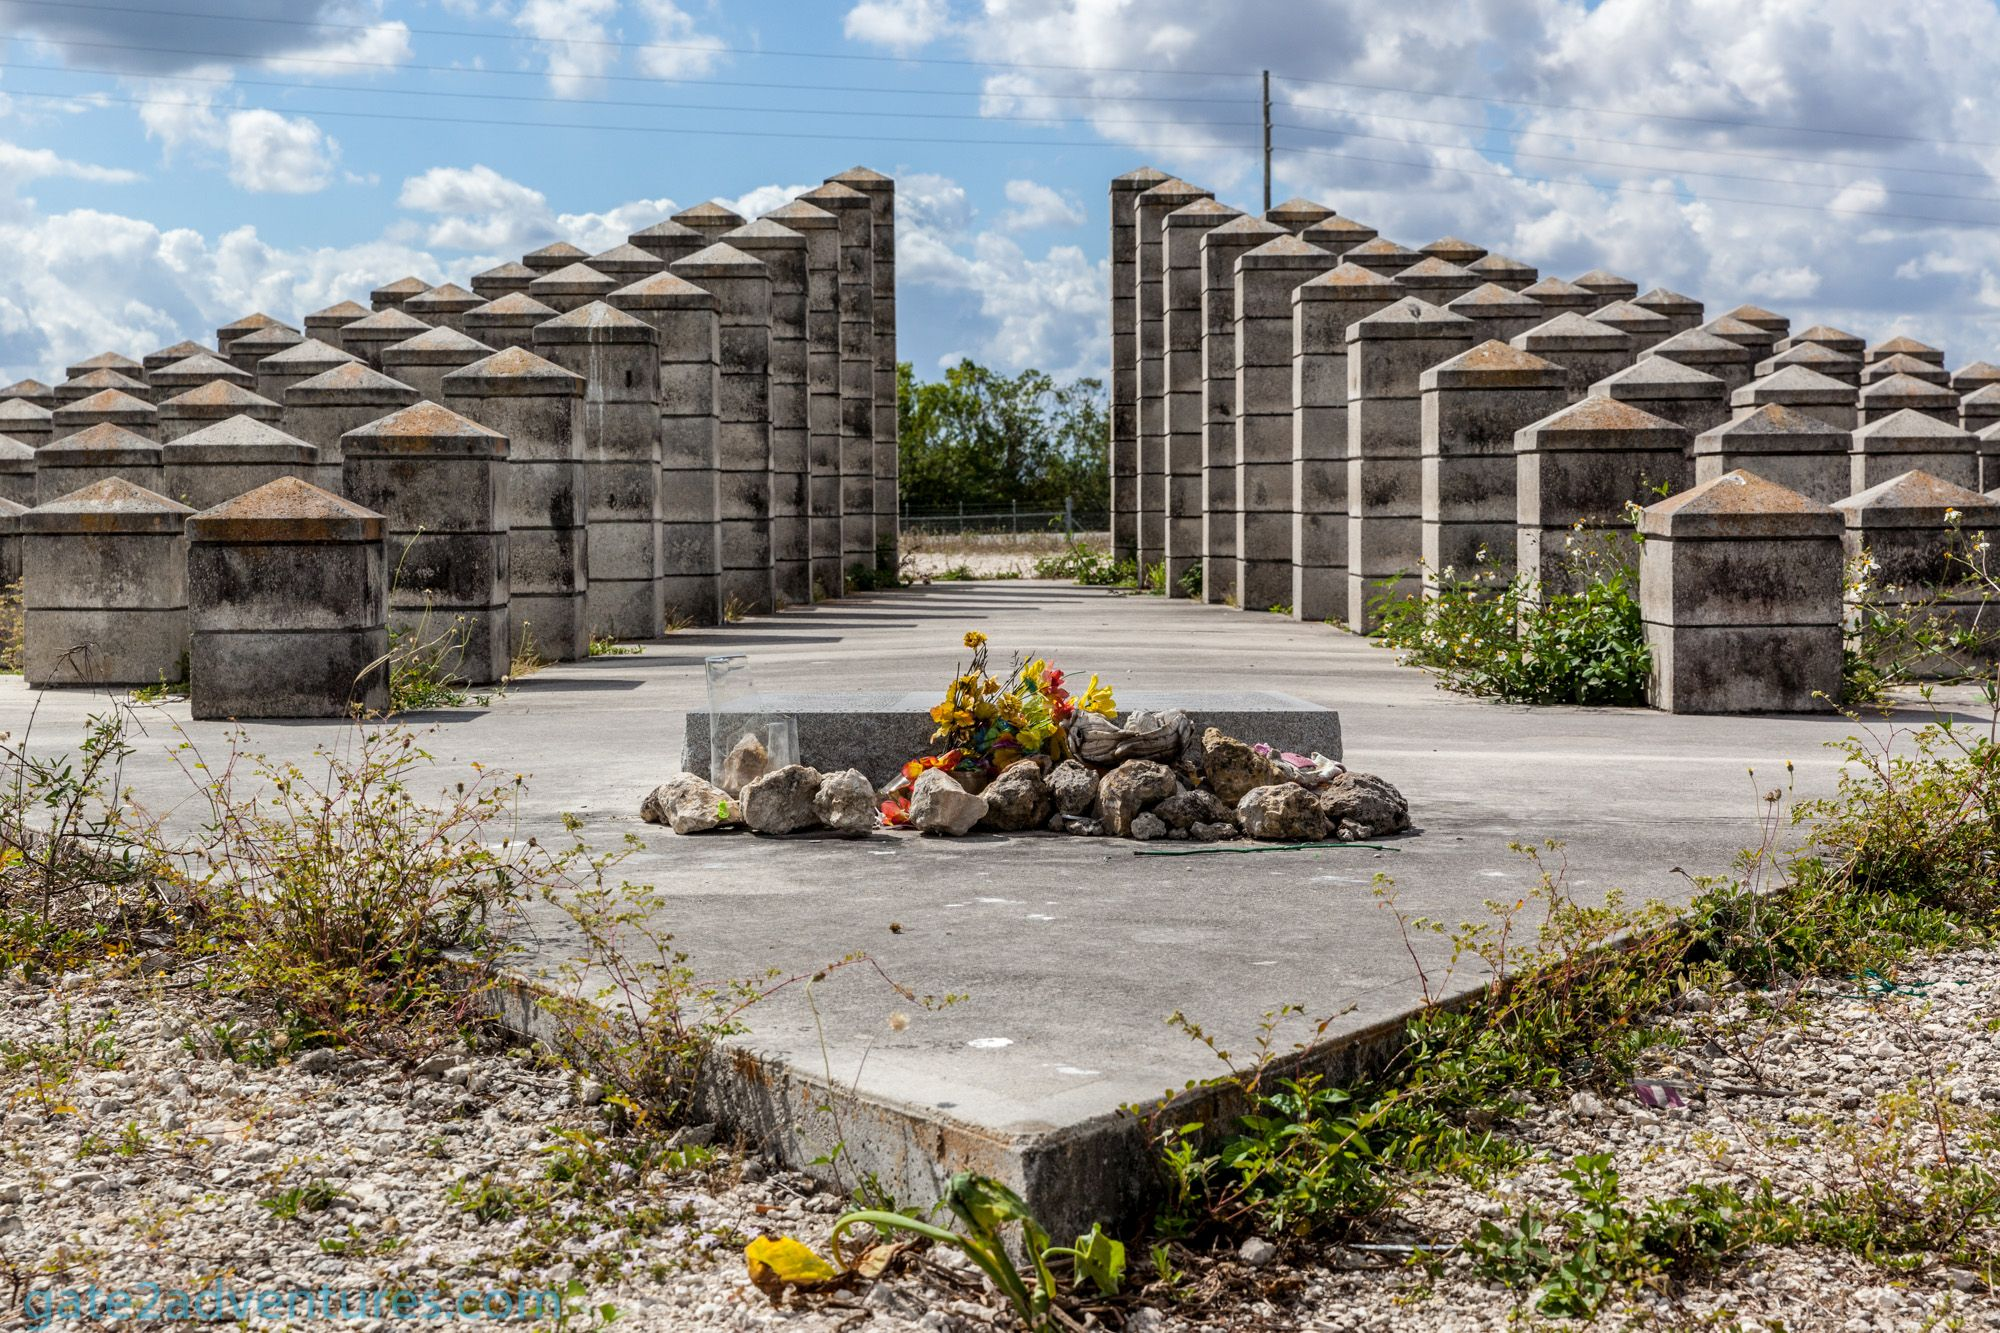 ValuJet Flight 592: Paying Respects at the Memorial